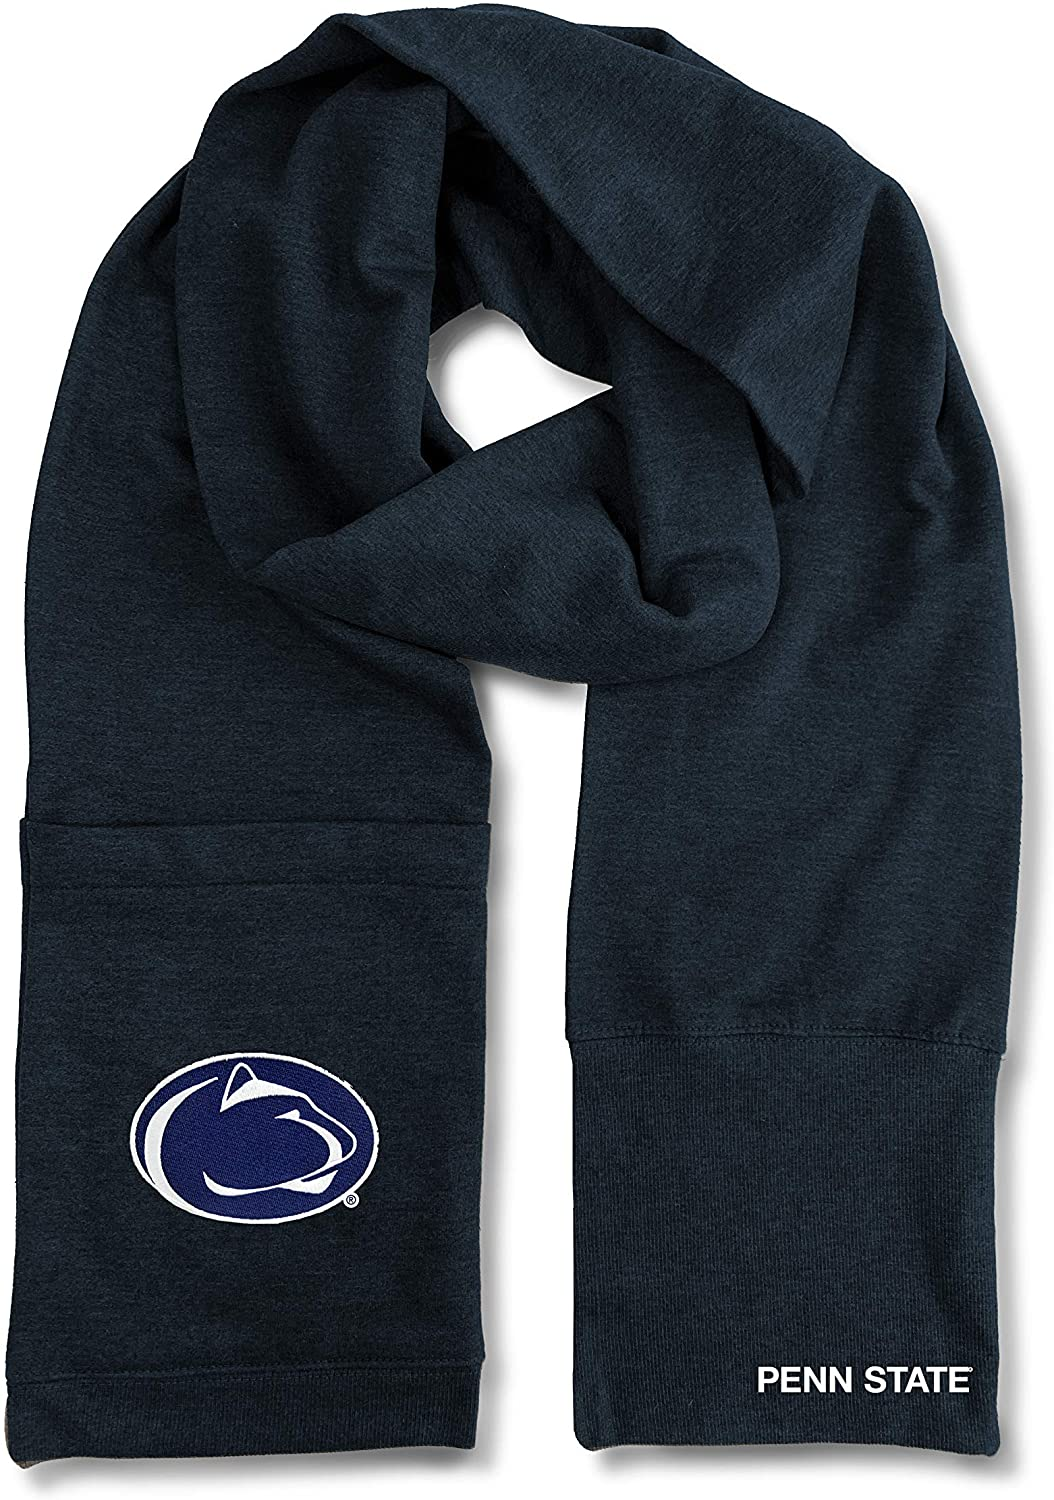 Littlearth NCAA Penn State Nittany Lions Jimmy Bean 4-in-1 Scarf, Team Color, Length 82